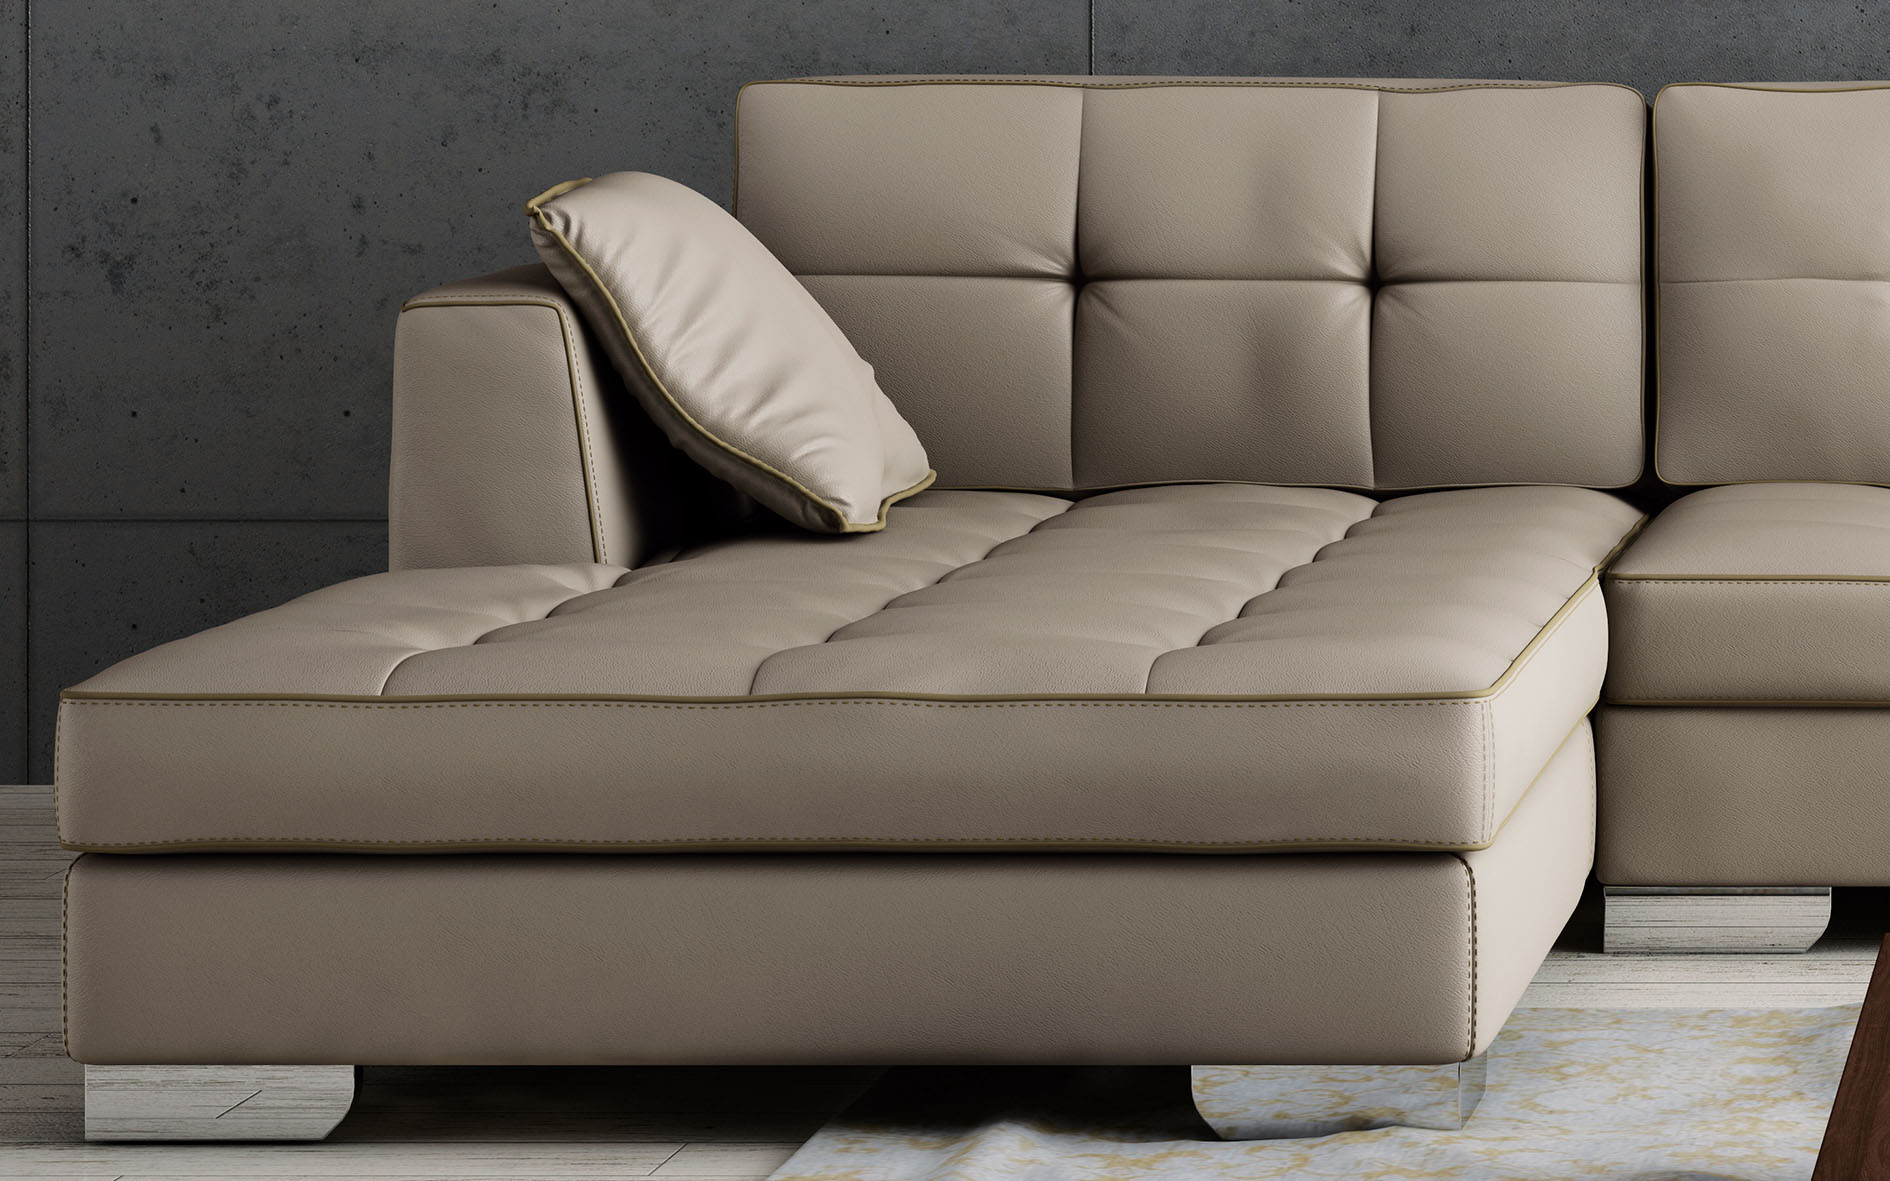 Luxury Tufted Designer All Leather Sectional Chesapeake